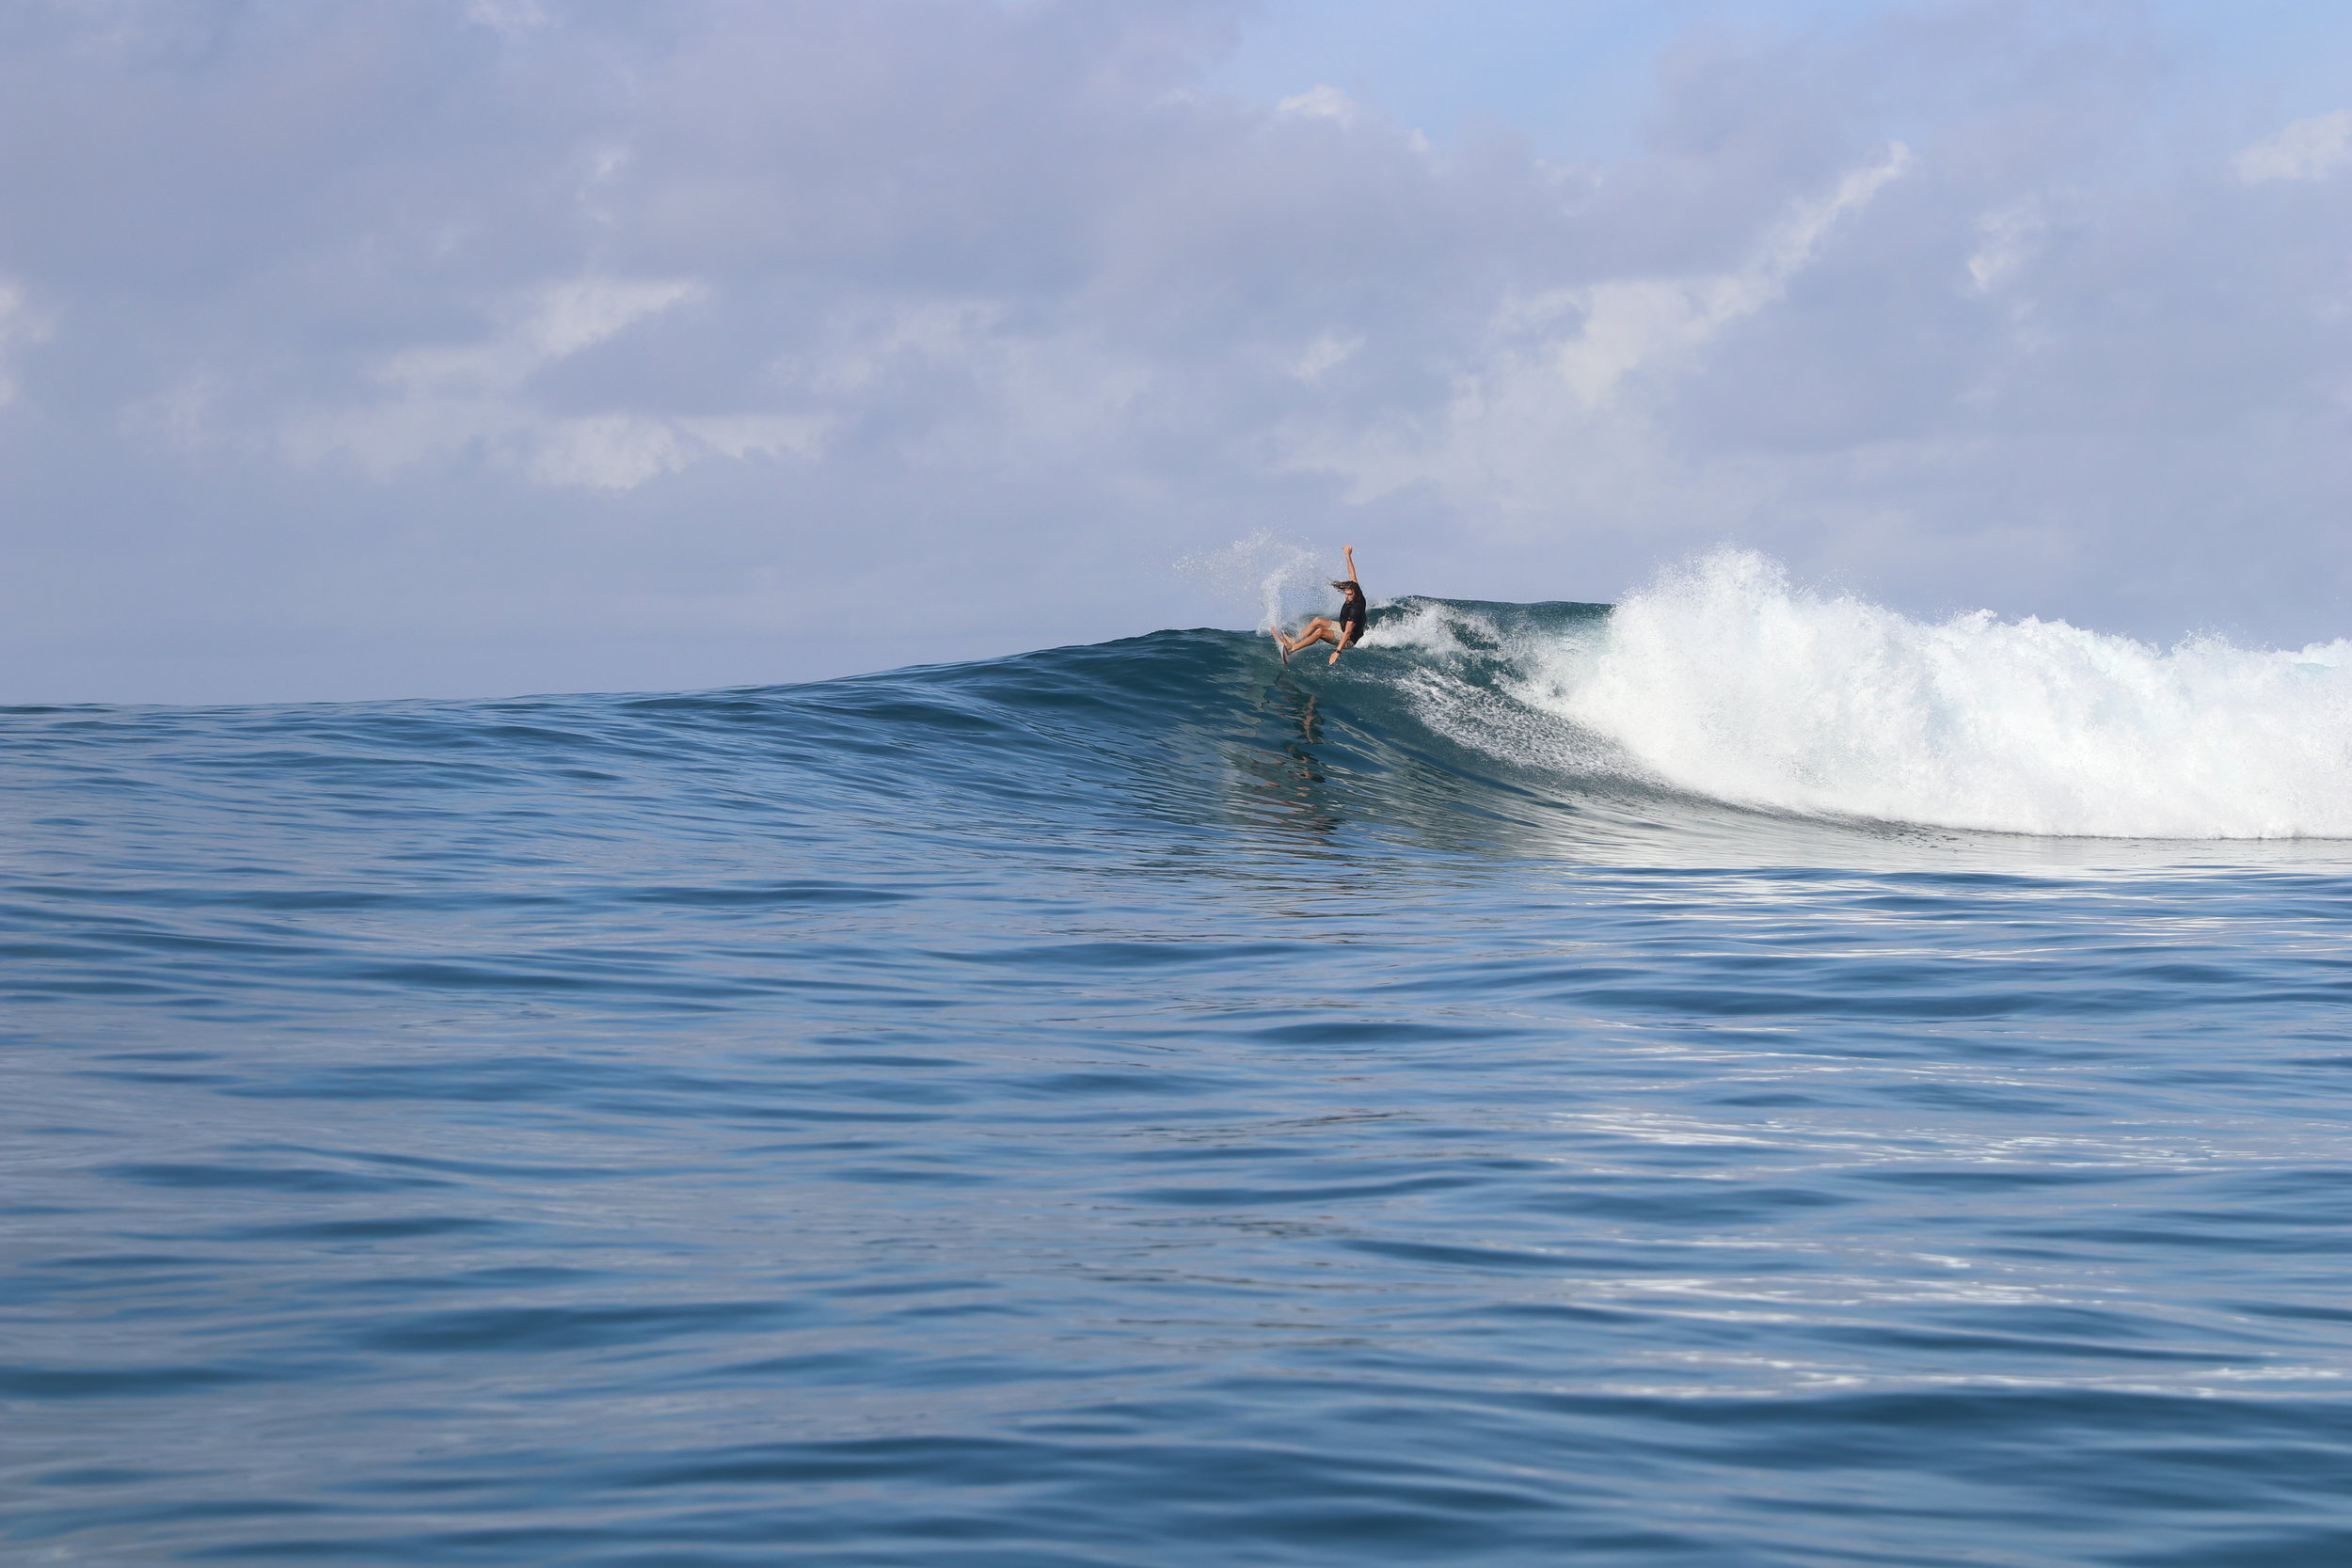 A super playful right in Fiji. This was on the Coral Coast. It is less well known than the Cloudbreak area, but still has plenty of good waves without the crowds.